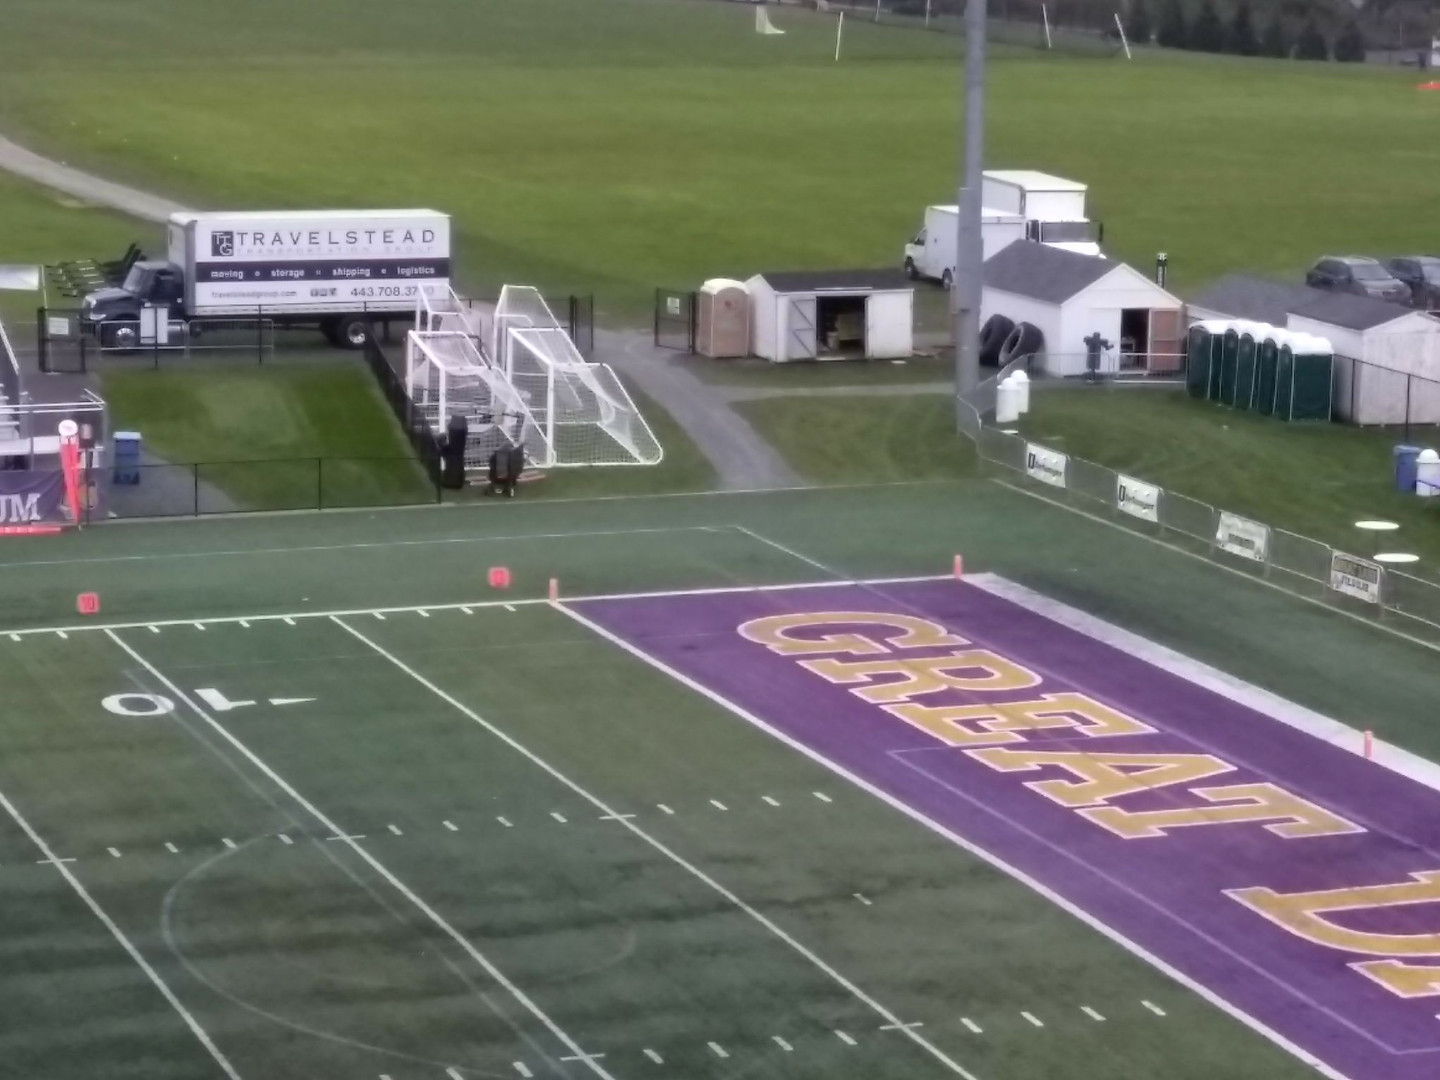 University of Albany Game Day Logisitics for Towson Univeristy Albany, NY